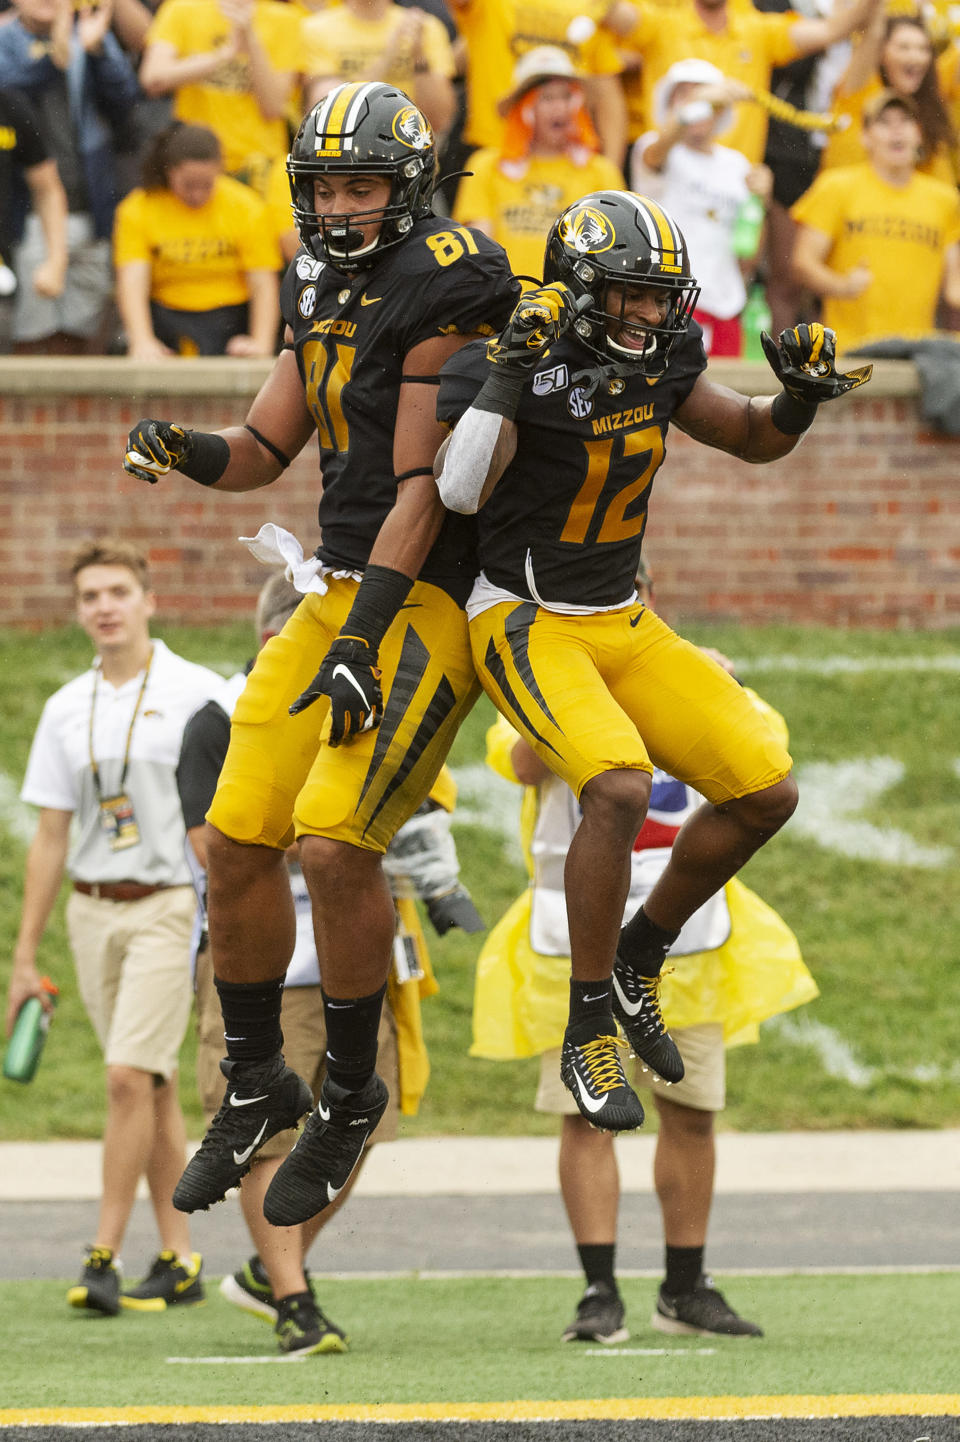 Missouri tight end Albert Okwuegbunam, left, celebrates his touchdown with teammate Johnathon Johnson during the second quarter of an NCAA college football game against South Carolina, Saturday, Sept. 21, 2019, in Columbia, Mo. (AP Photo/L.G. Patterson)